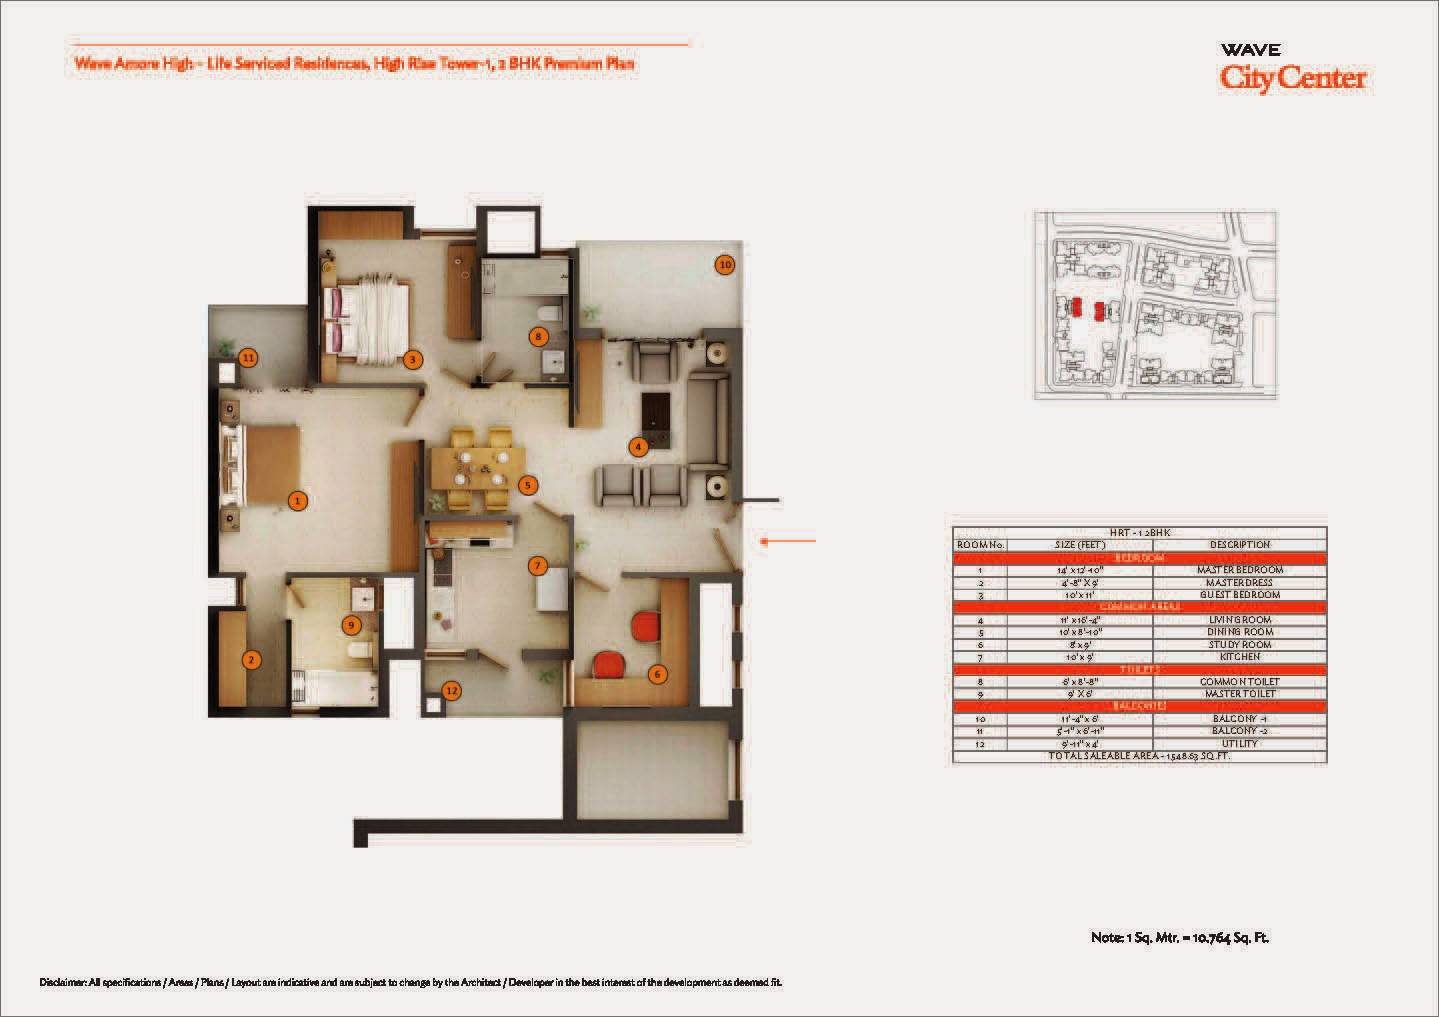 High Rise Tower 1,2 BHK Premium Plan